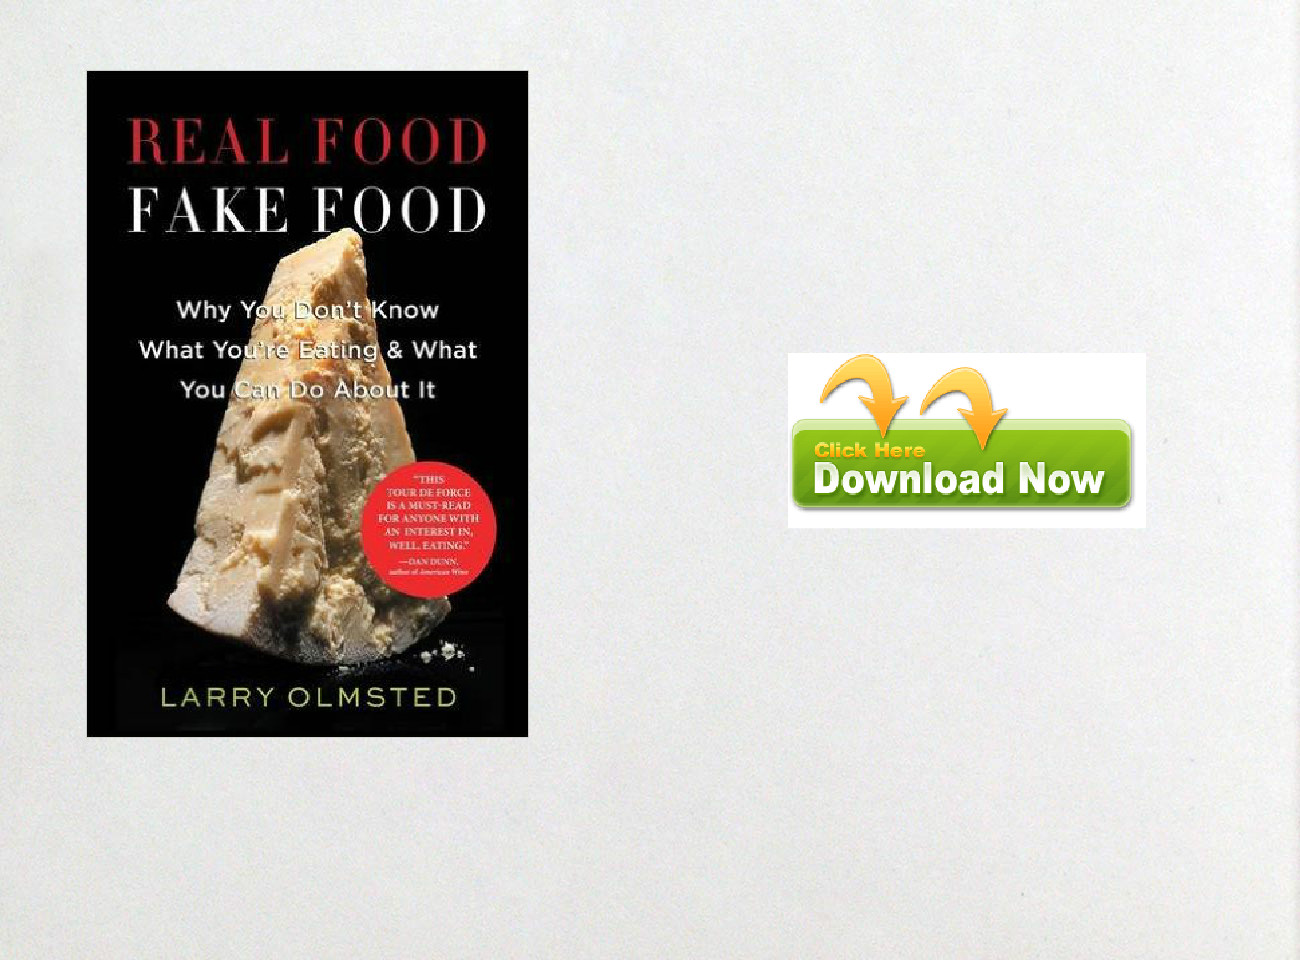 Download eBook Real Food/Fake Food by Larry Olmsted pdf doc ePub